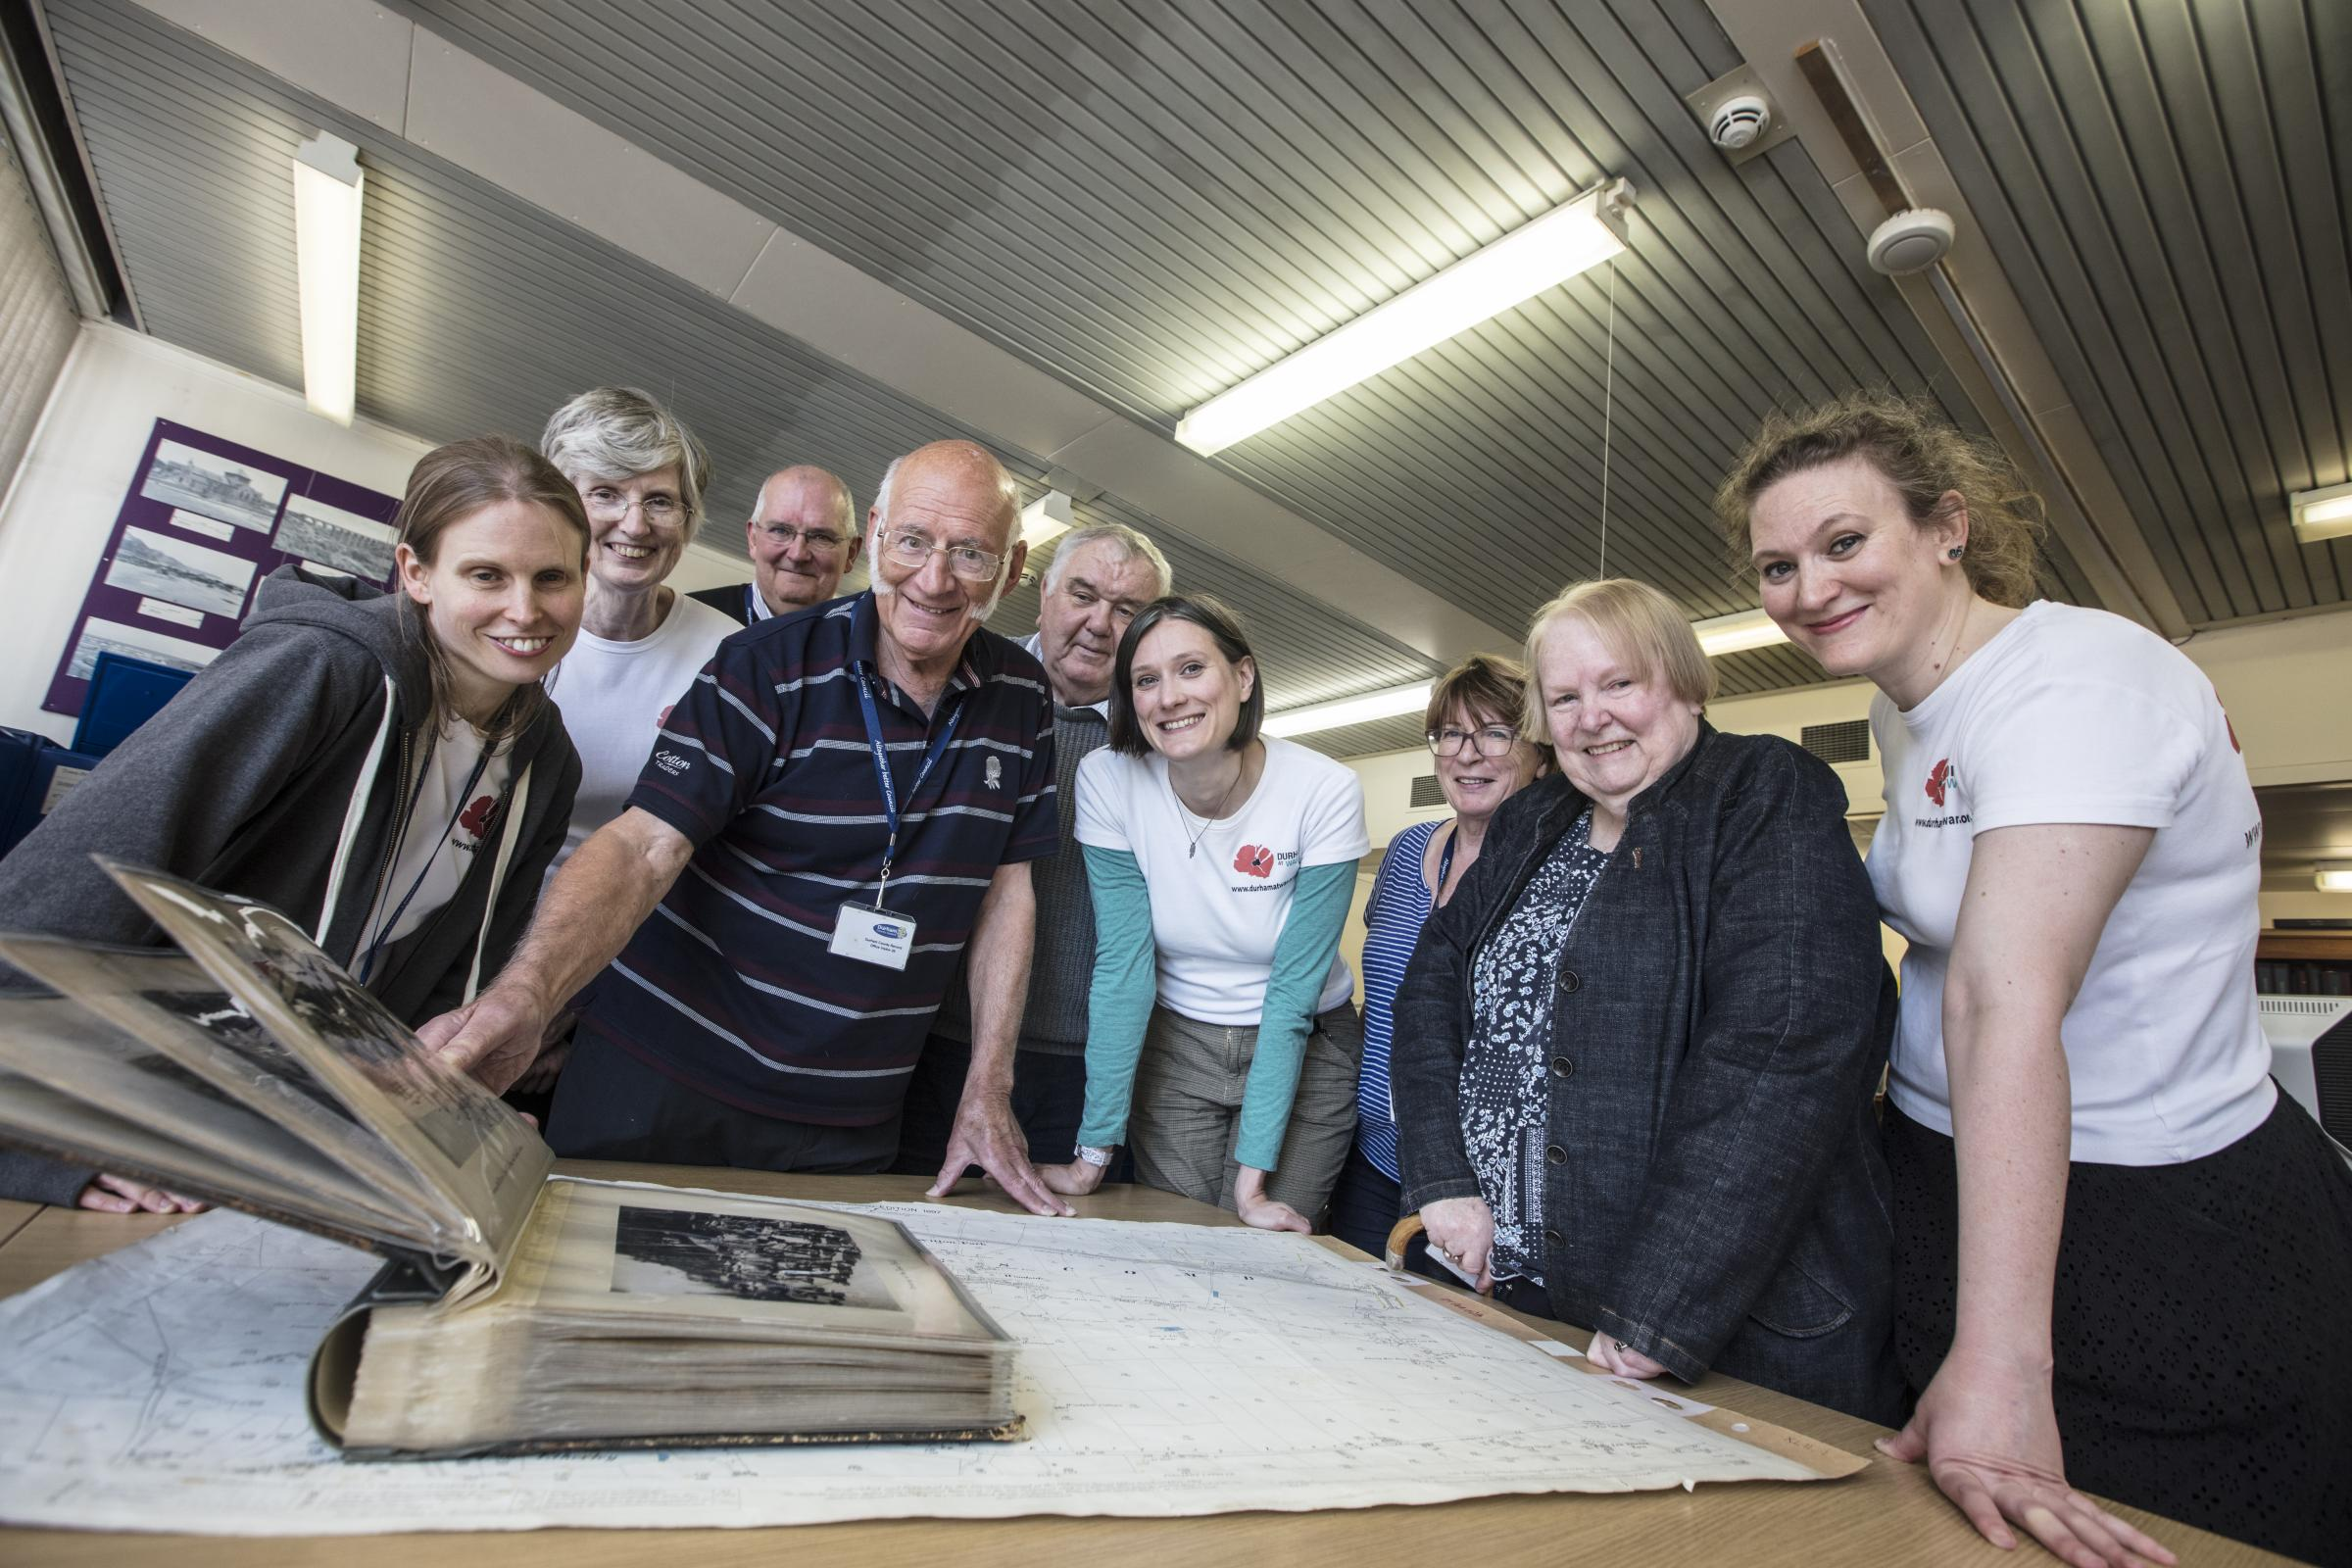 WAR: The Durham at War project has allowed visitors to explore County Durham's war experiences like never before